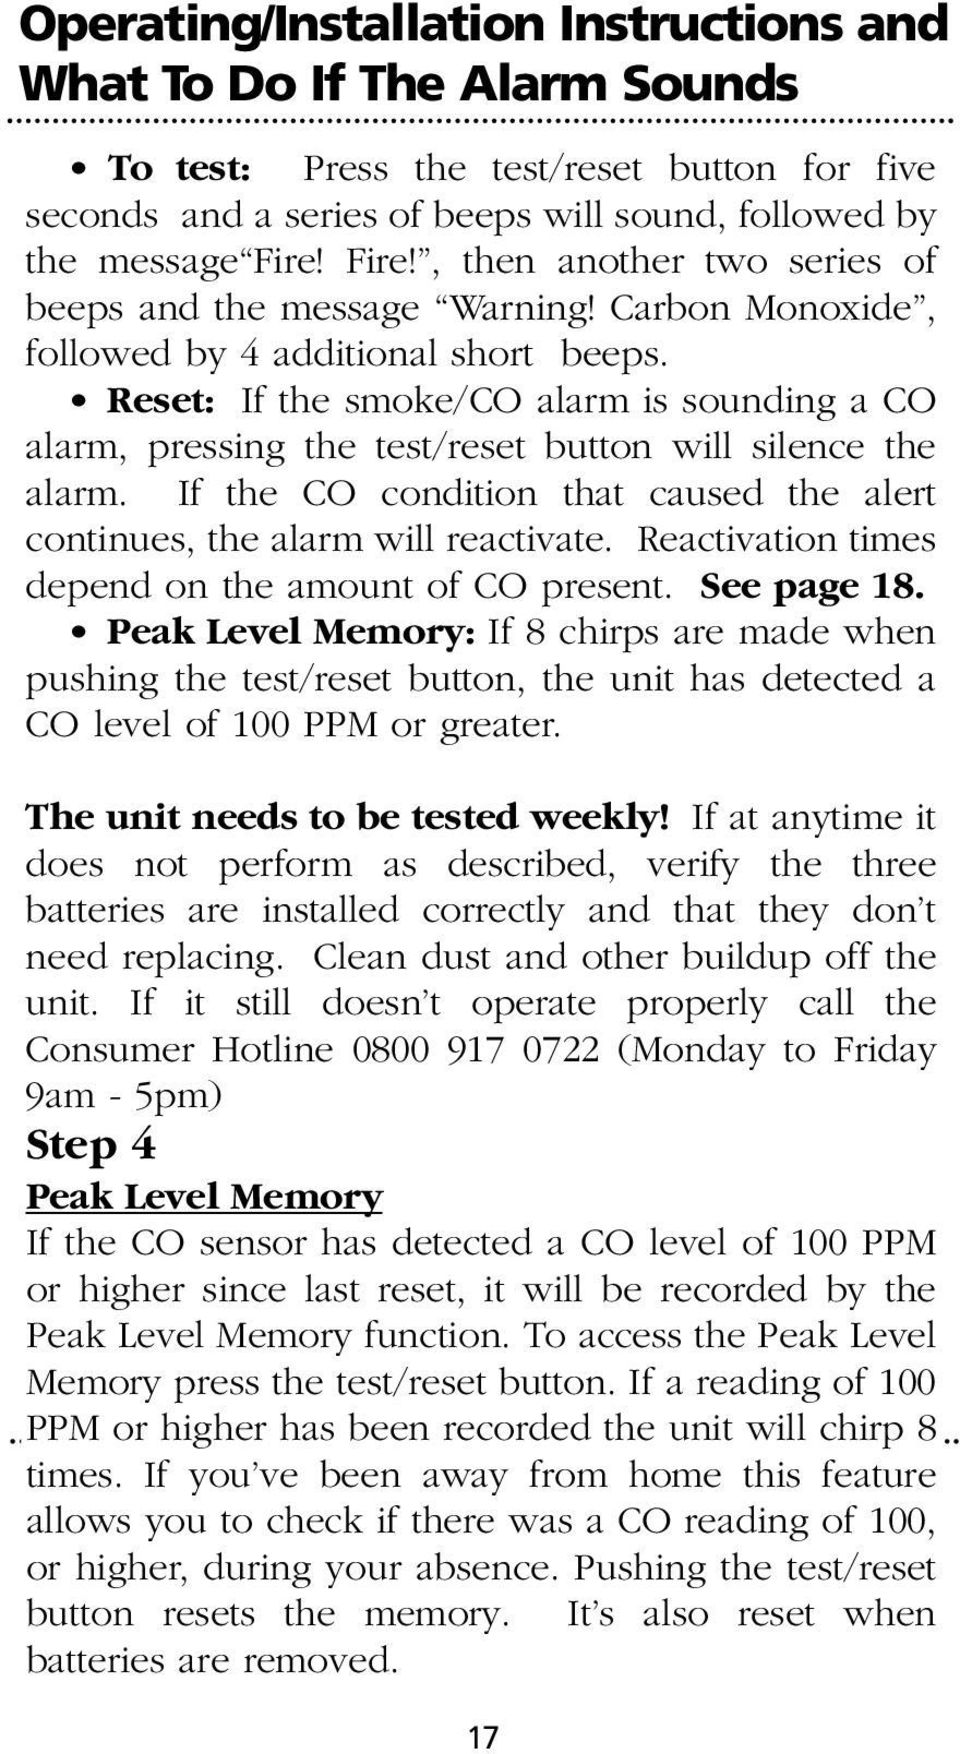 Reset: If the smoke/co alarm is sounding a CO alarm, pressing the test/reset button will silence the alarm. If the CO condition that caused the alert continues, the alarm will reactivate.